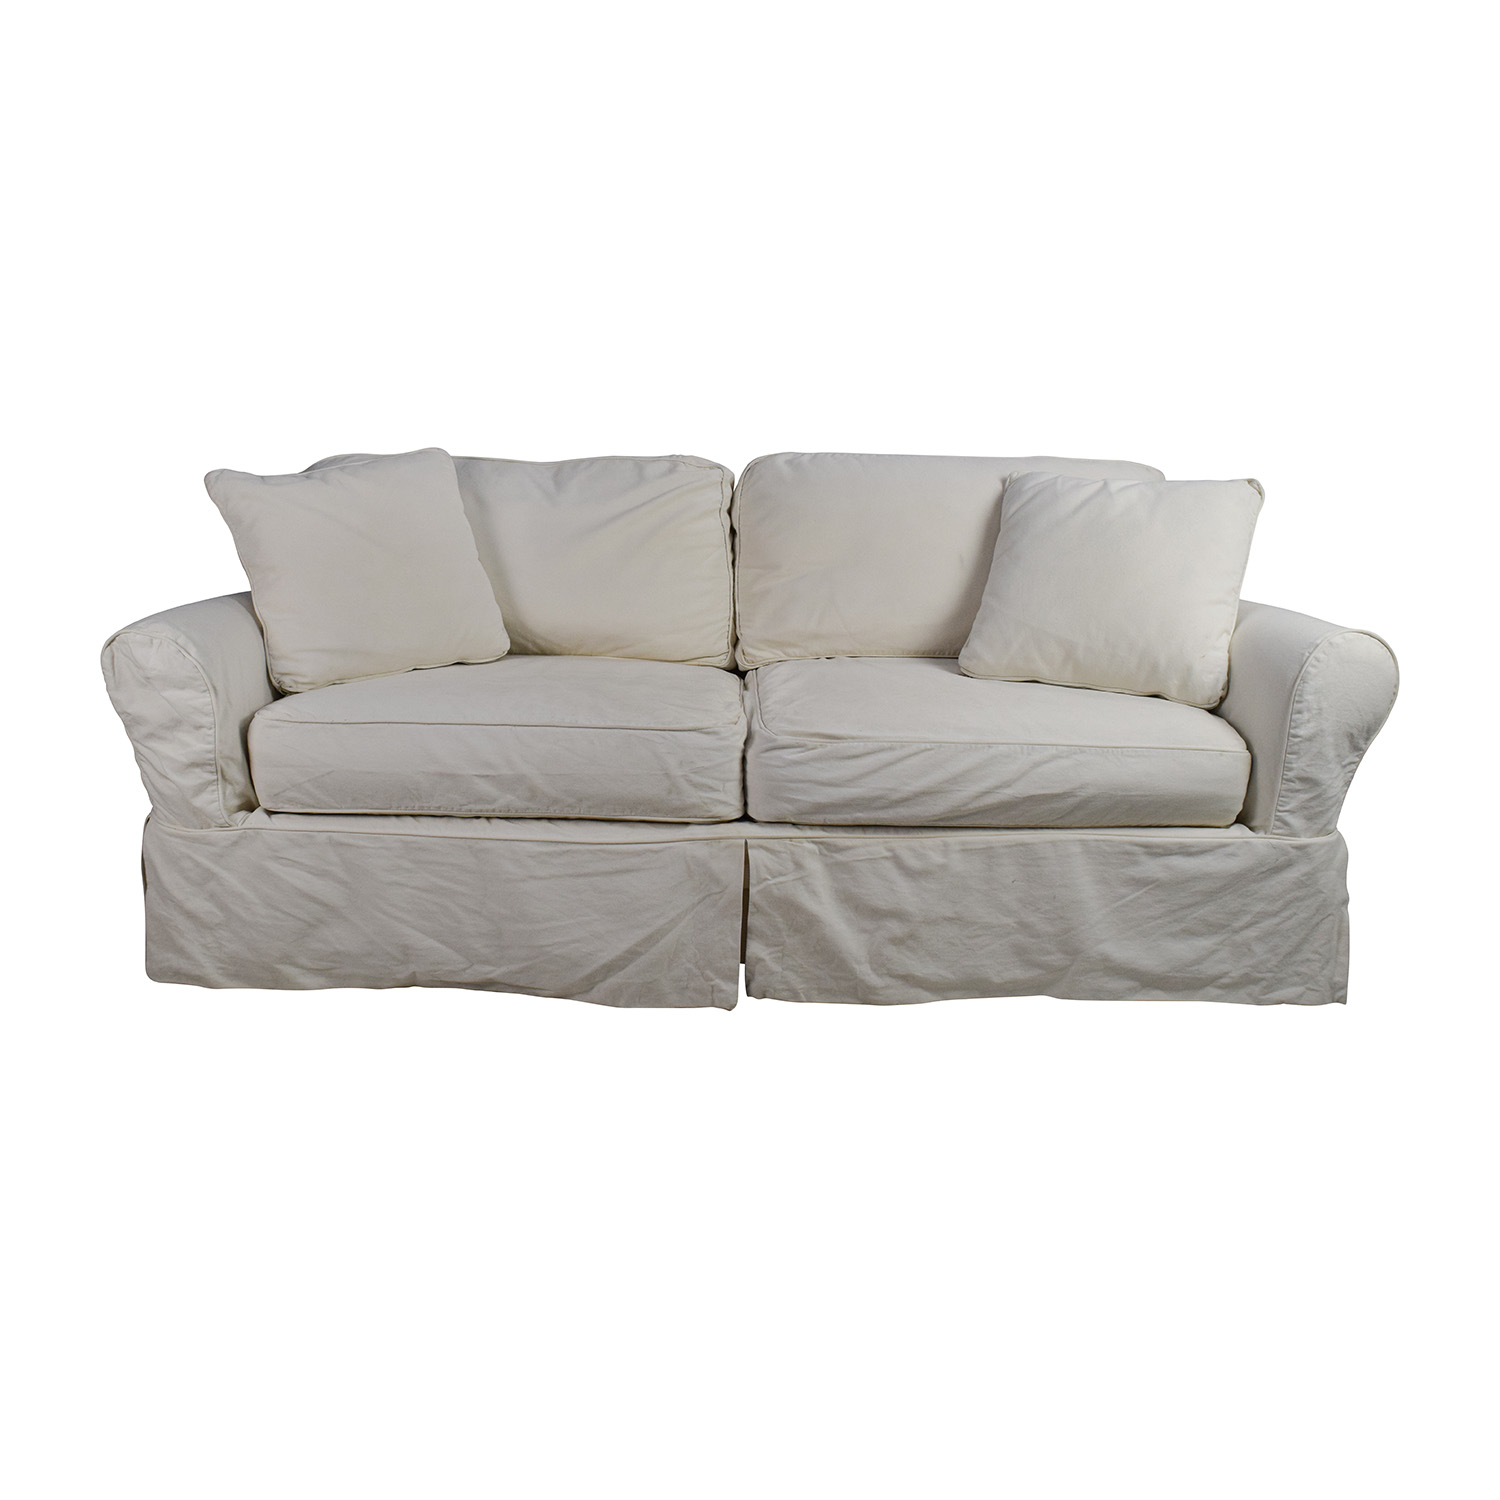 Raymour And Flanigan Lakeside Sofa Clic Sofas